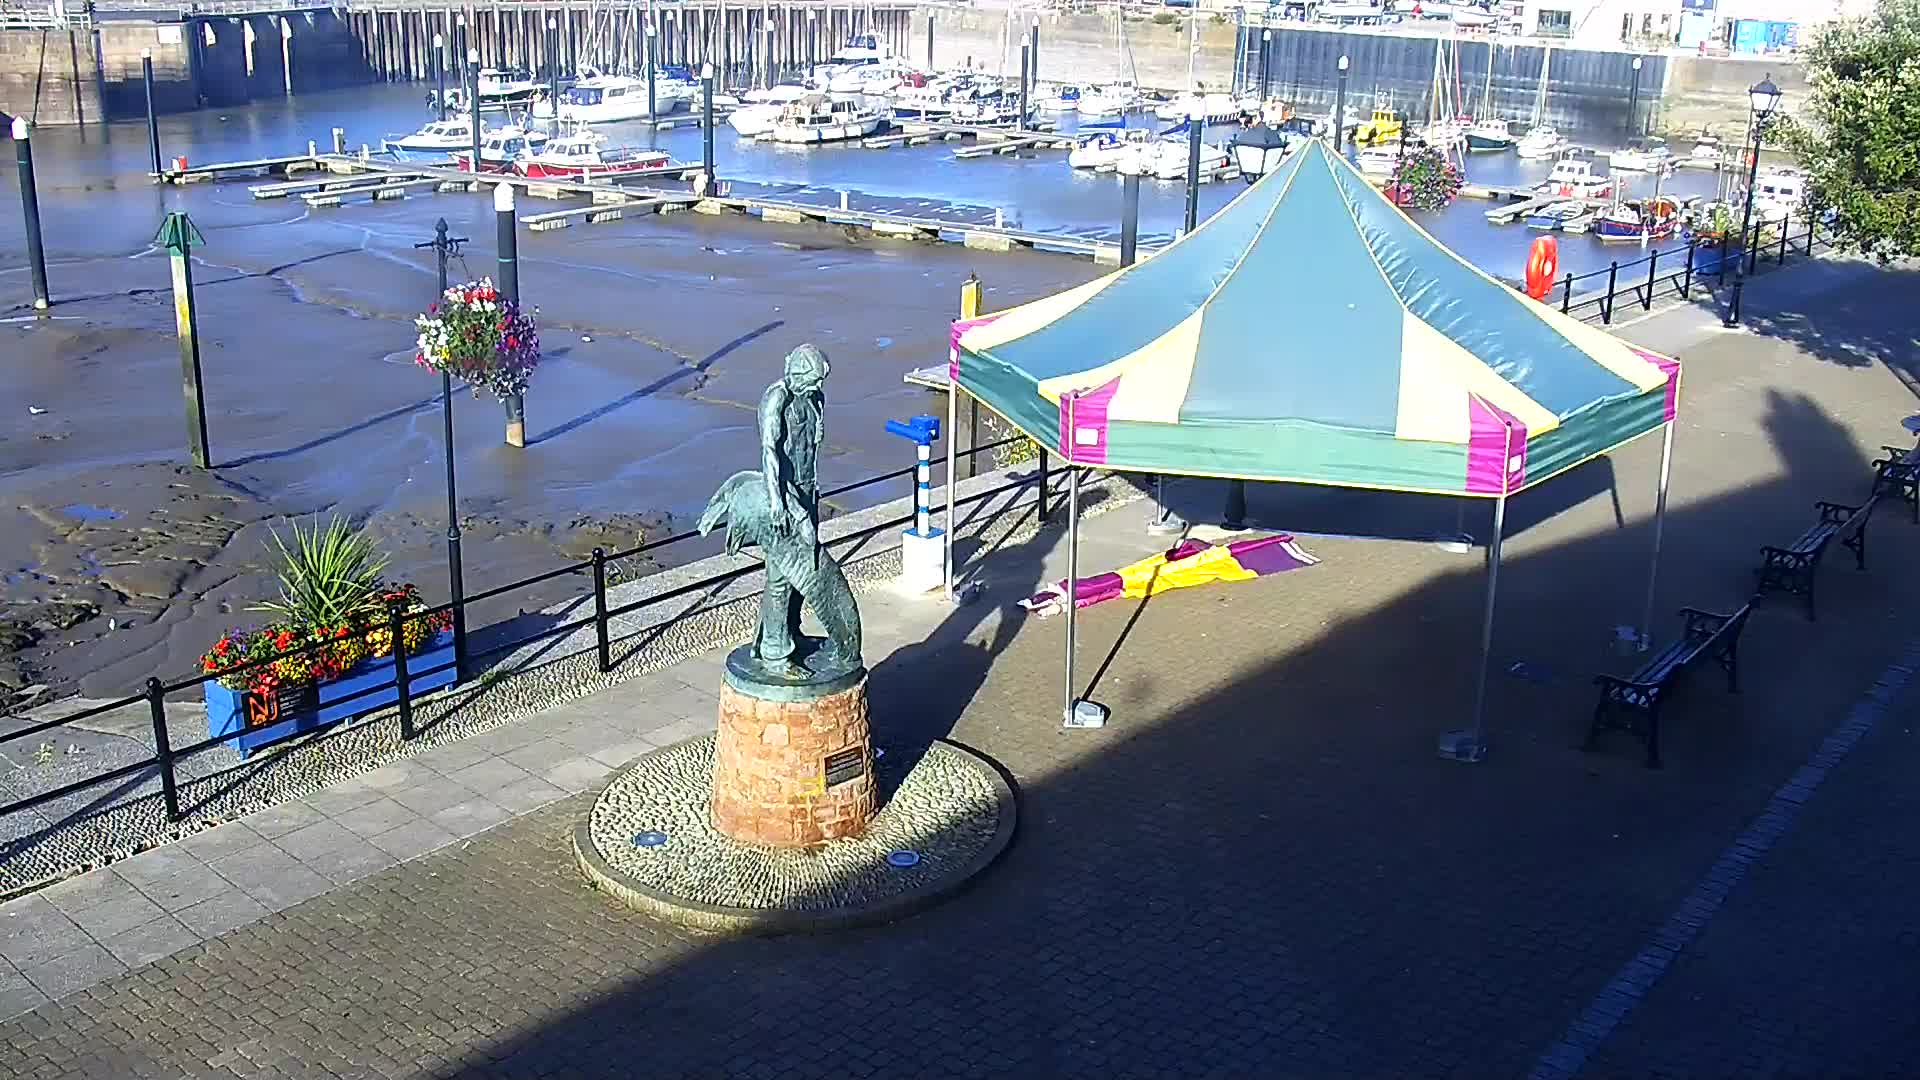 Watchet Sat. 18:33